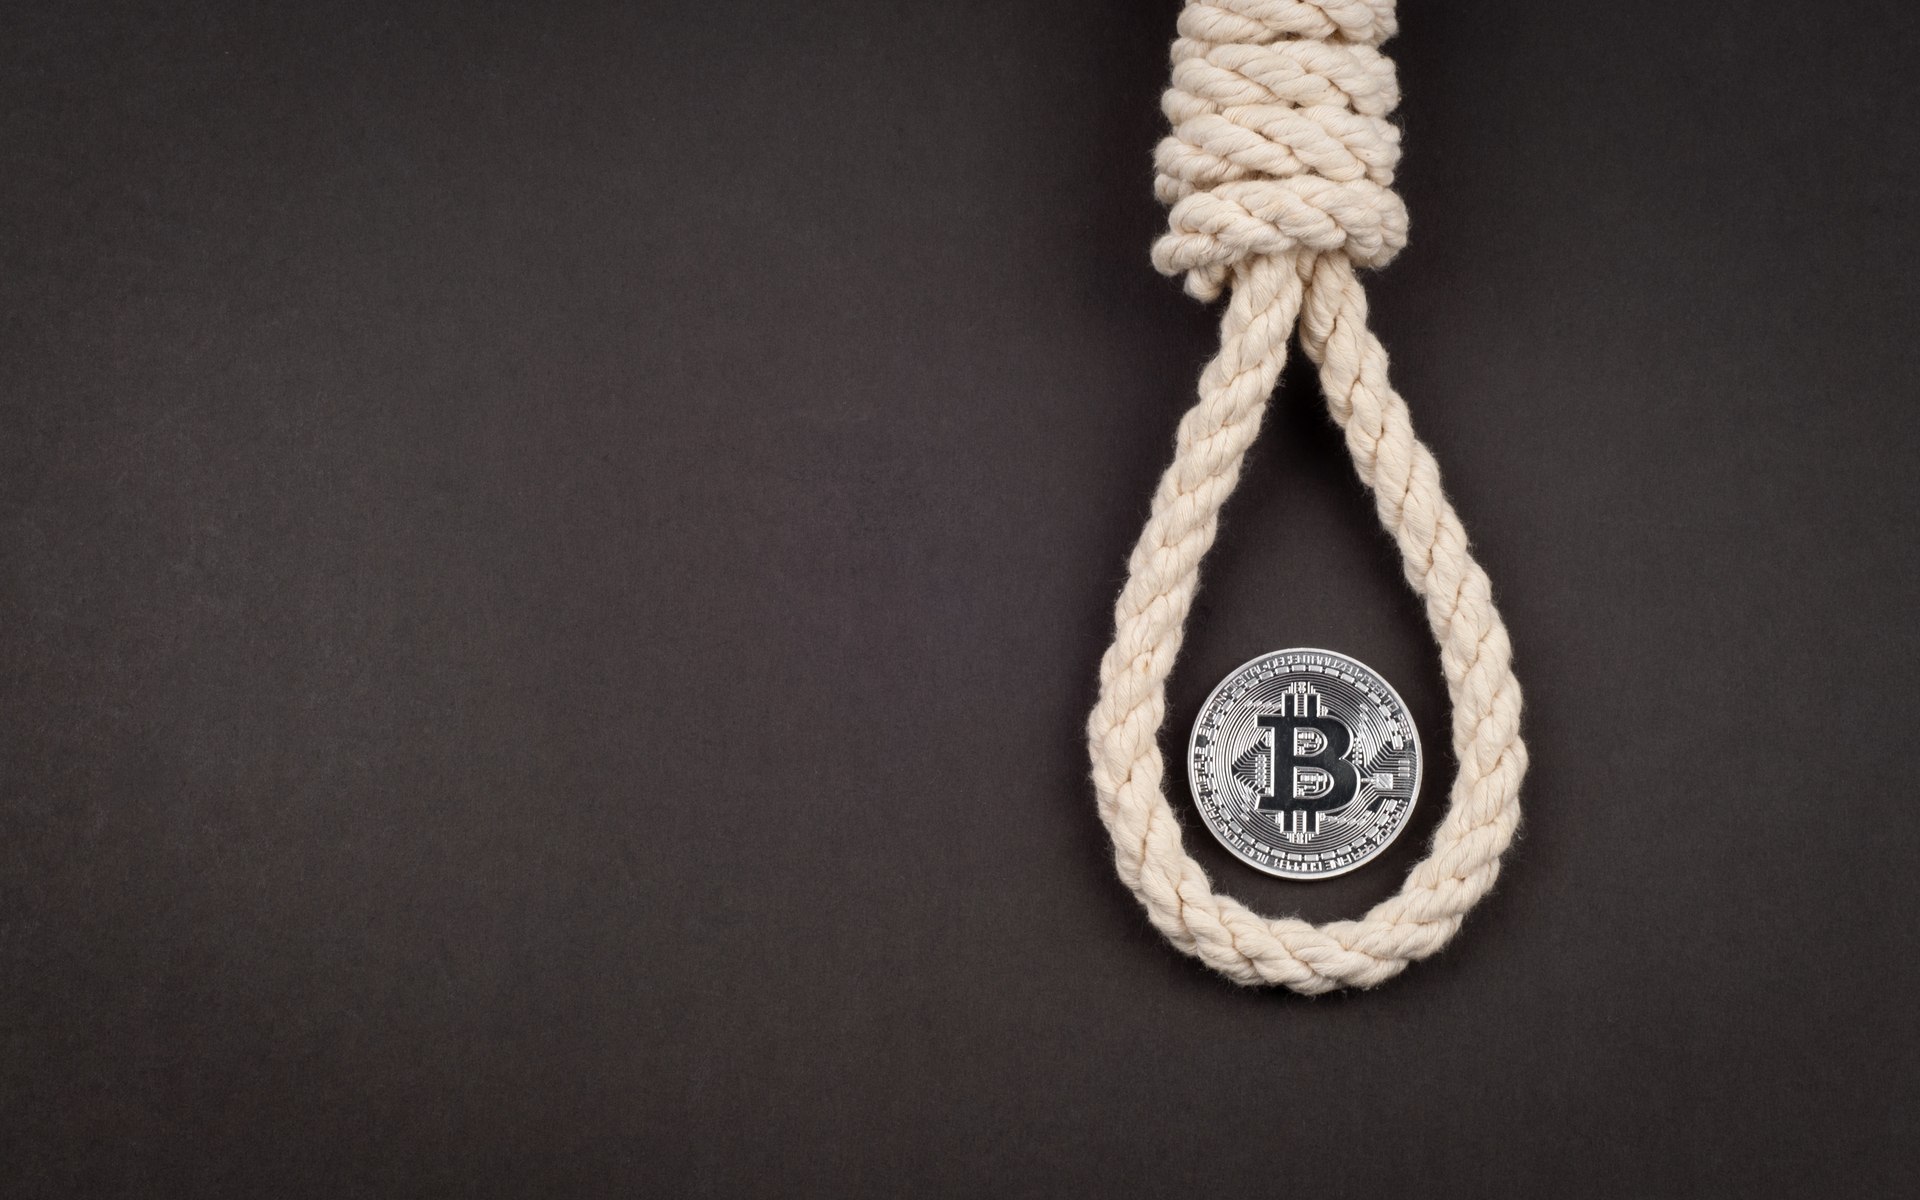 Hedera Hashgraph: What Happened to the 'Bitcoin Killer'?